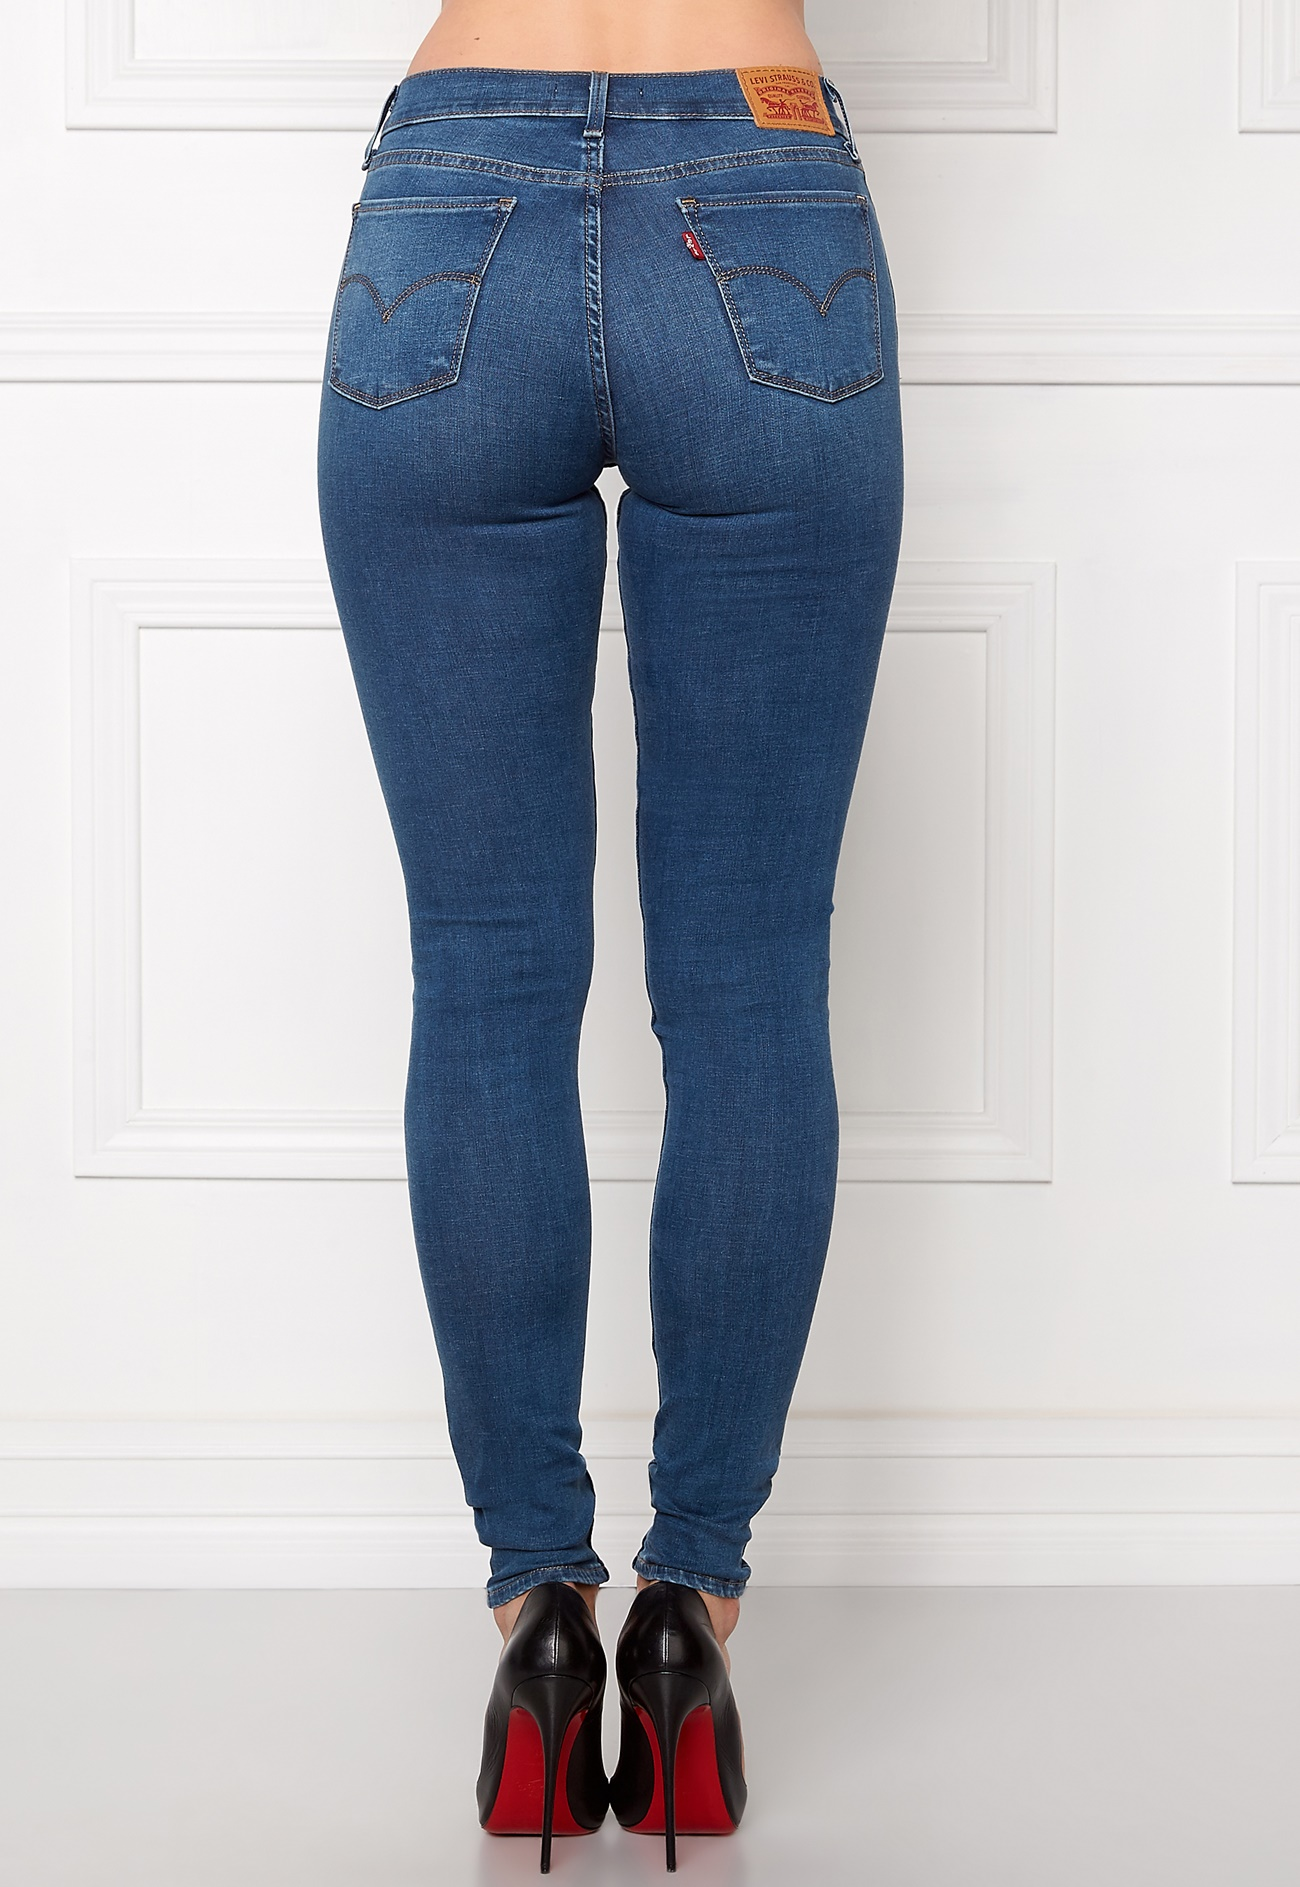 Free shipping and returns on skinny jeans for women at flip13bubble.tk Shop for skinny jeans by wash, rise, waist size, and more from brands like Articles of Society, Topshop, AG, Madewell, and more. Free shipping and returns.